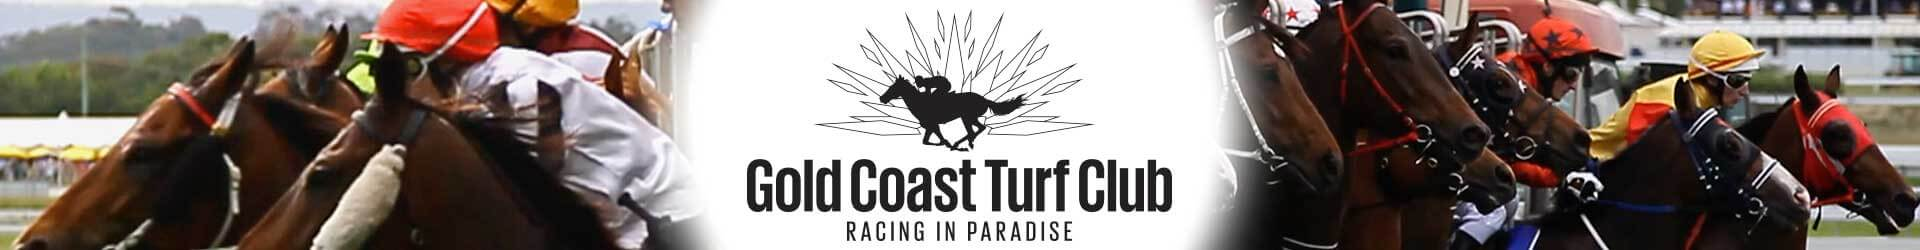 Able Video Gold Coast Turf Club Topbar